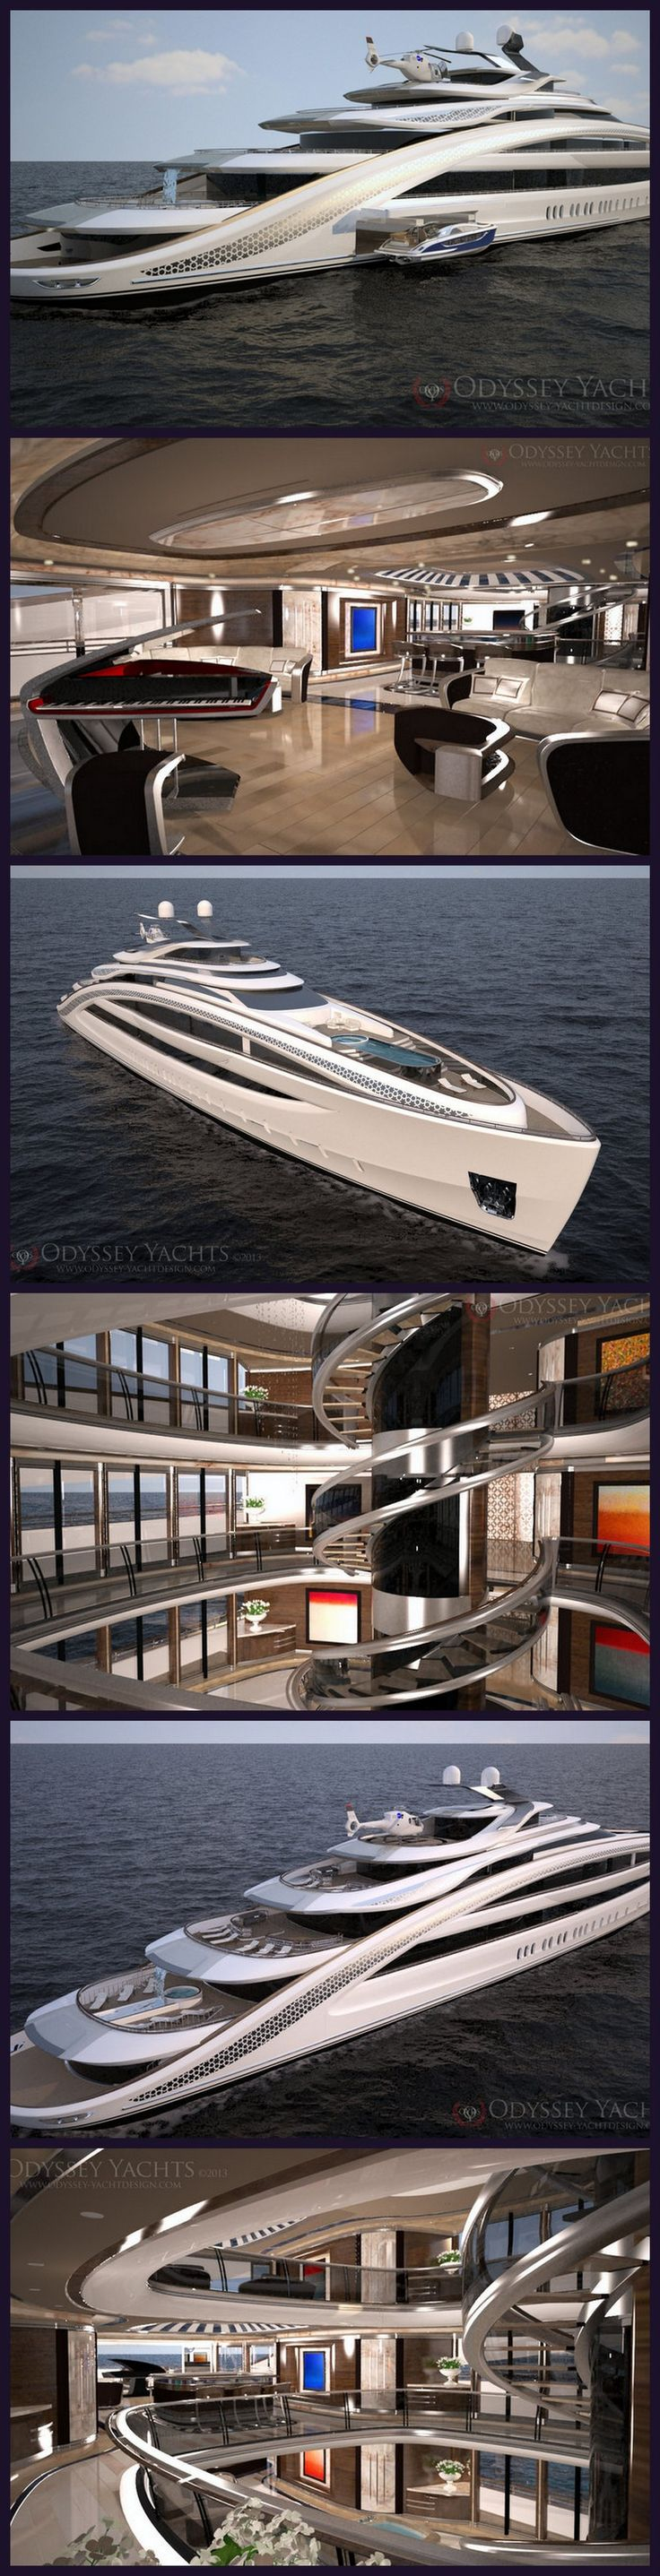 Odyssey Yachts announce release of 95m Motor Yacht 'Nautilus' project